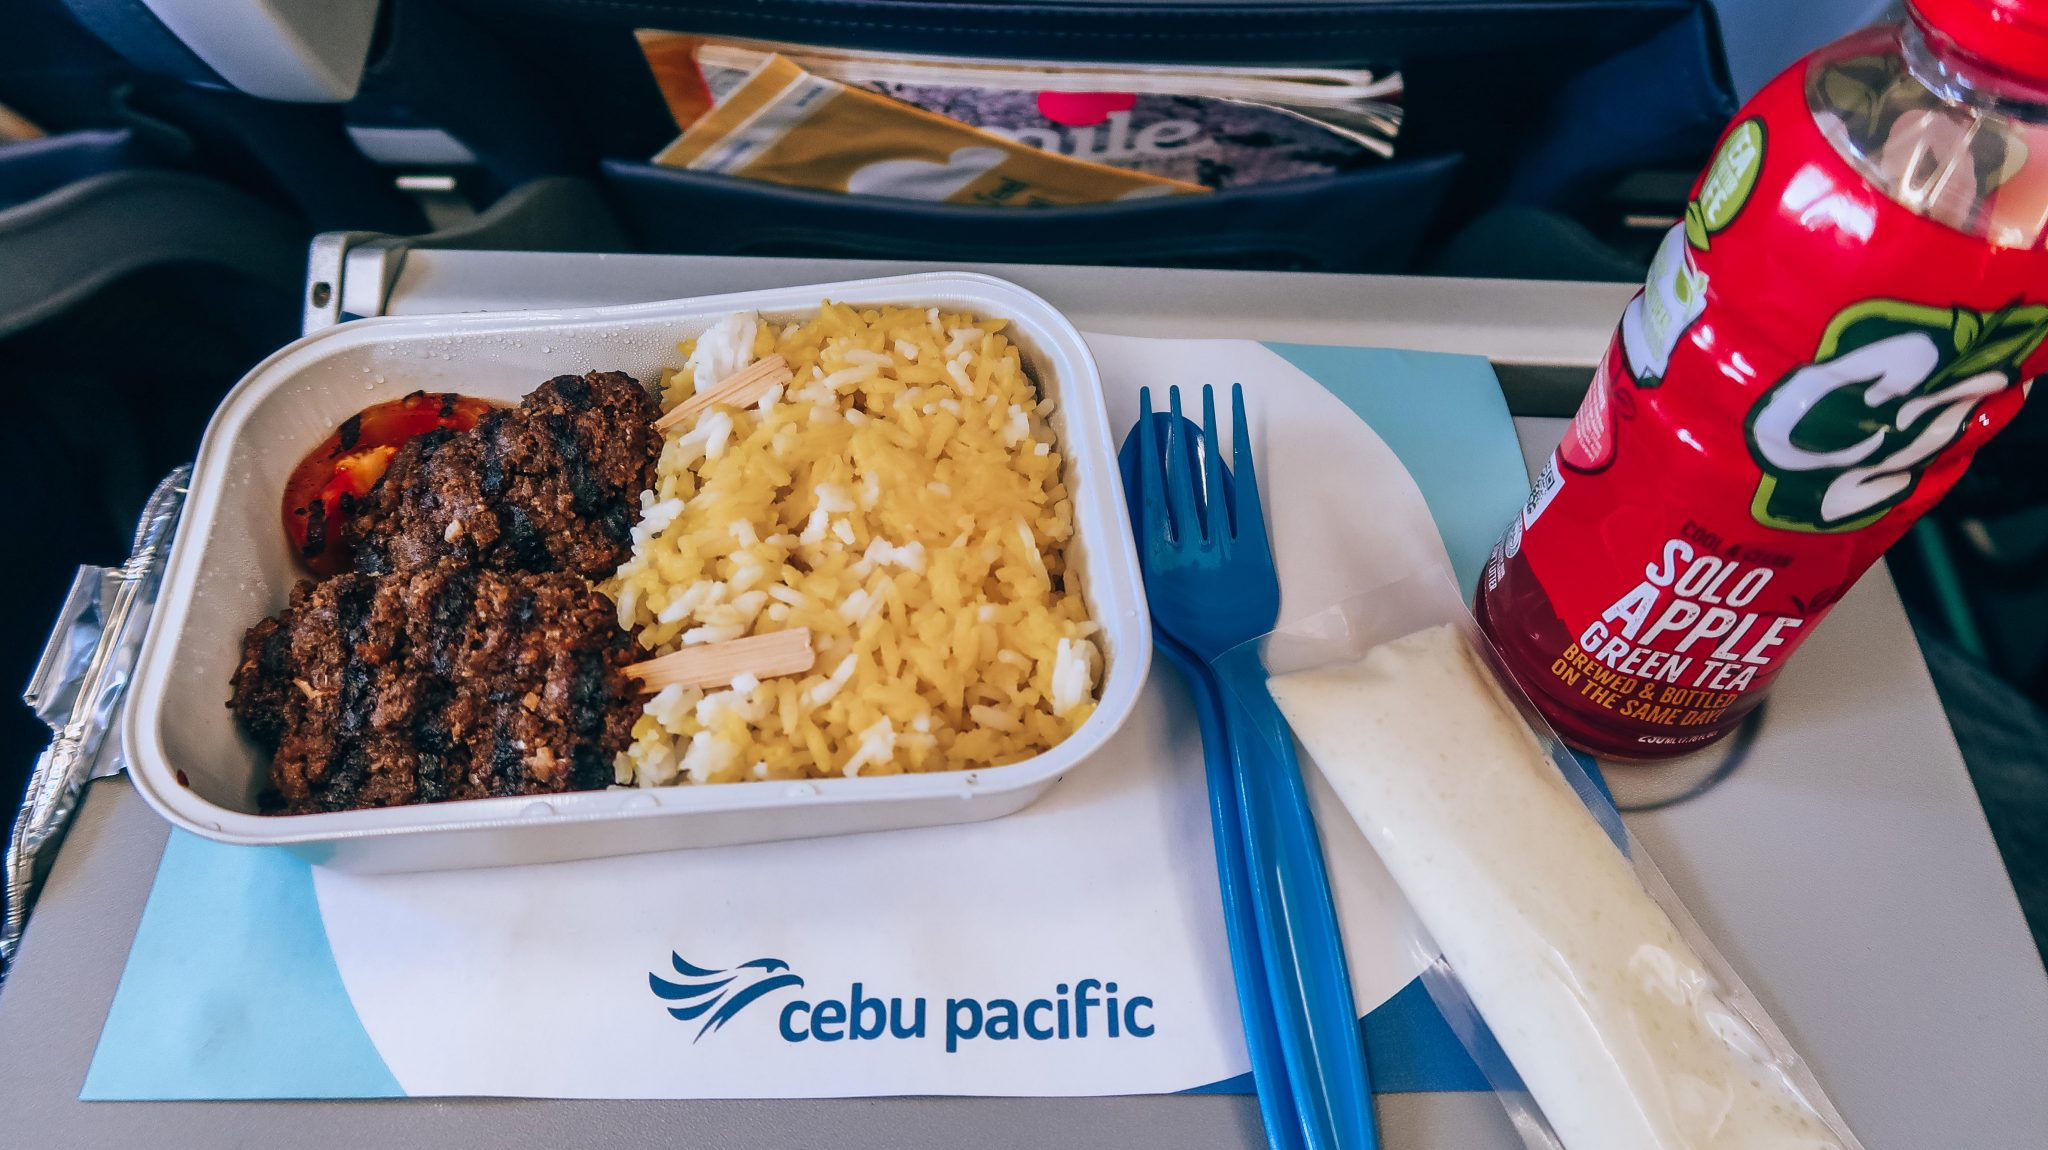 Tia-Lacson-Cebu-Pacific-Dubai-Long-haul-fllights